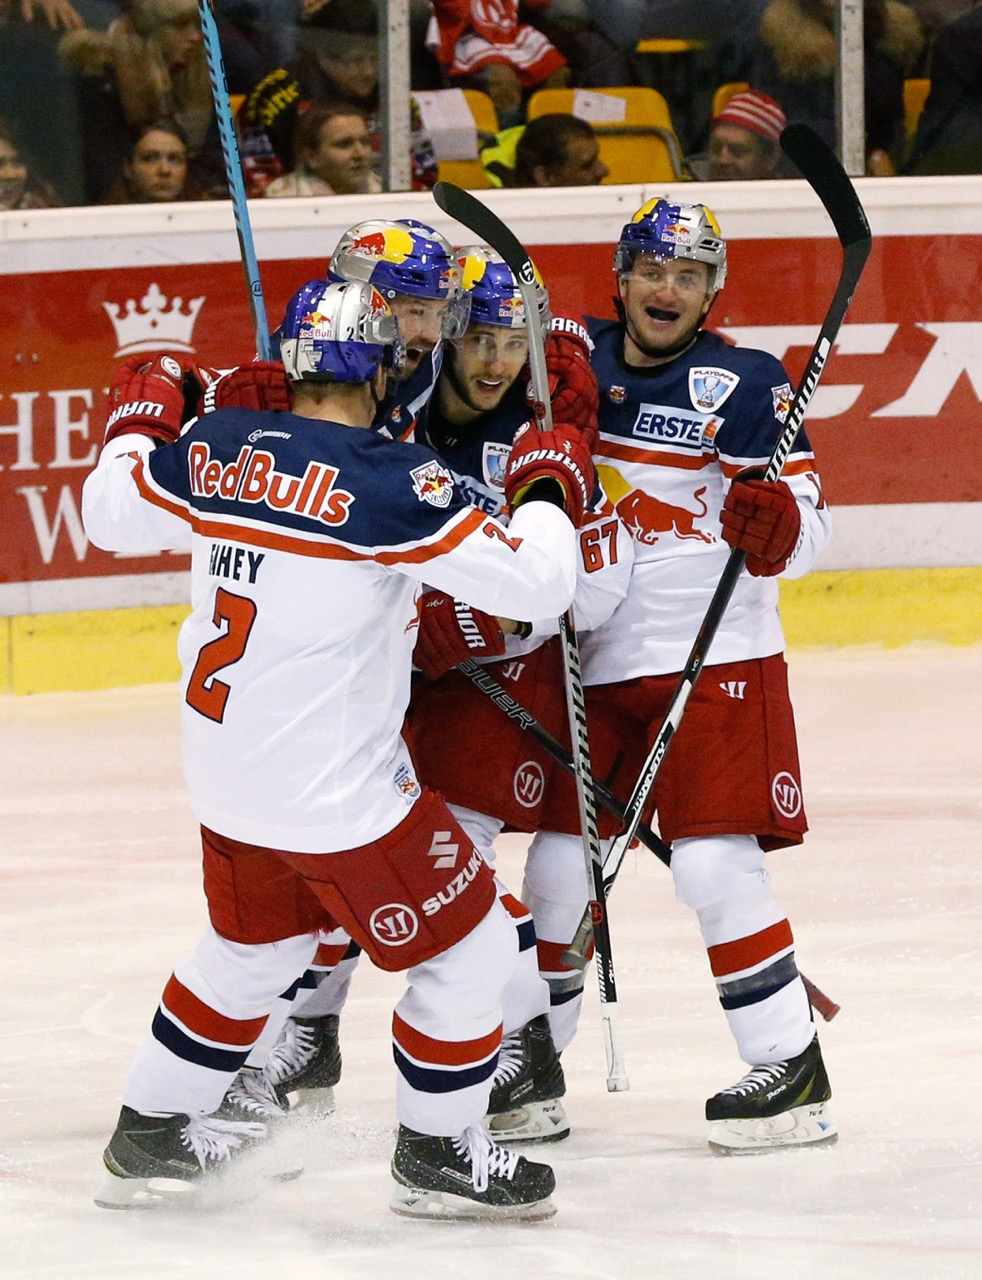 KLAGENFURT,AUSTRIA,28.FEB.16 - ICE HOCKEY - EBEL, Erste Bank Eishockey Liga, Playoff quarterfinal, KAC Klagenfurt vs EC Red Bull Salzburg. Image shows the rejoicing of the players of EC RBS.   Photo: GEPA pictures/ David Rodriguez Anchuelo - For editorial use only. Image is free of charge. GEPA pictures/ David Rodriguez